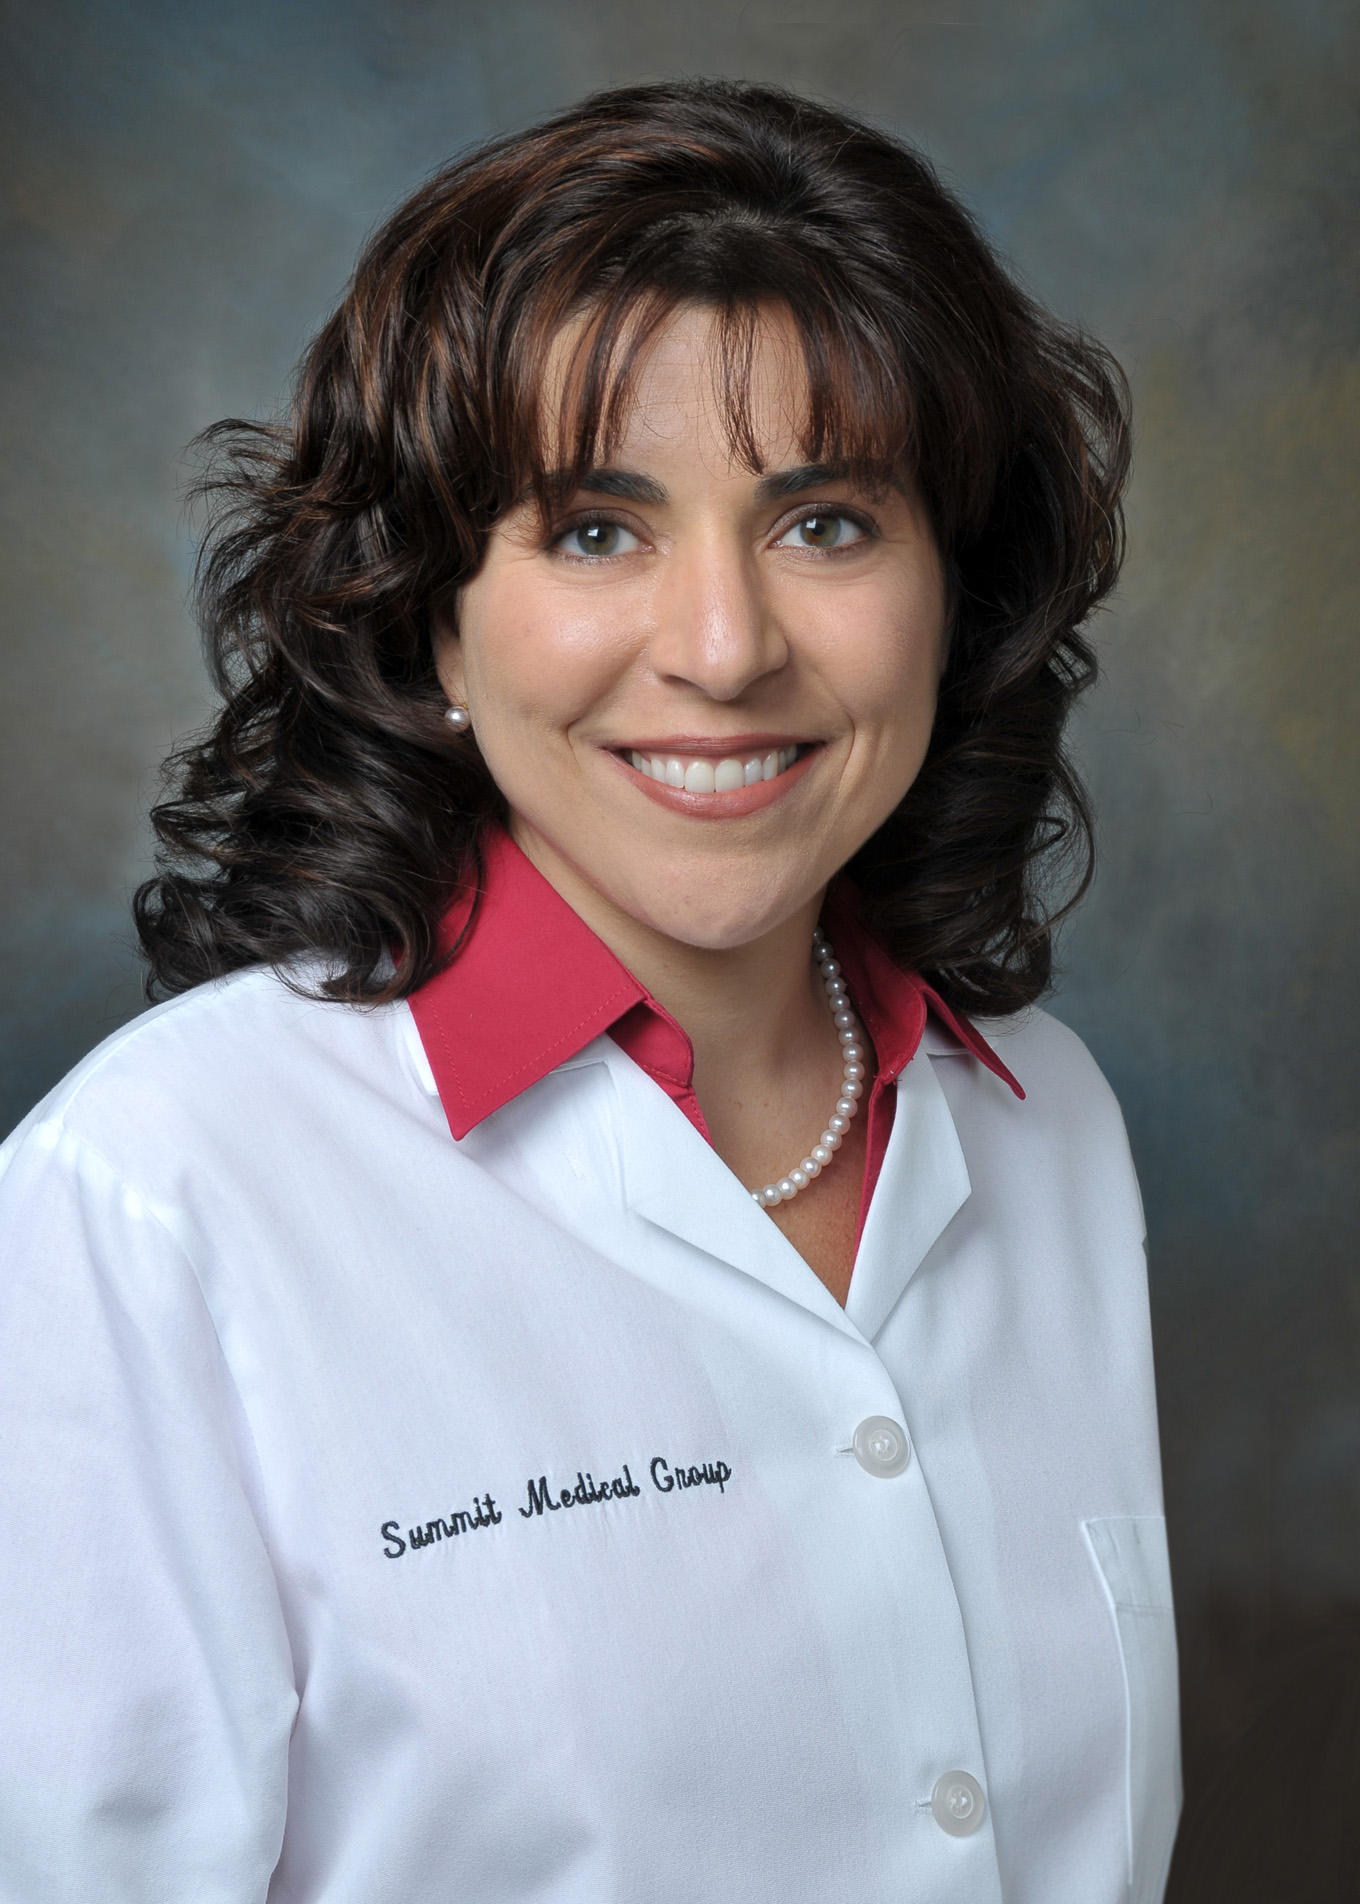 Lisa Campanella-Coppo, MD